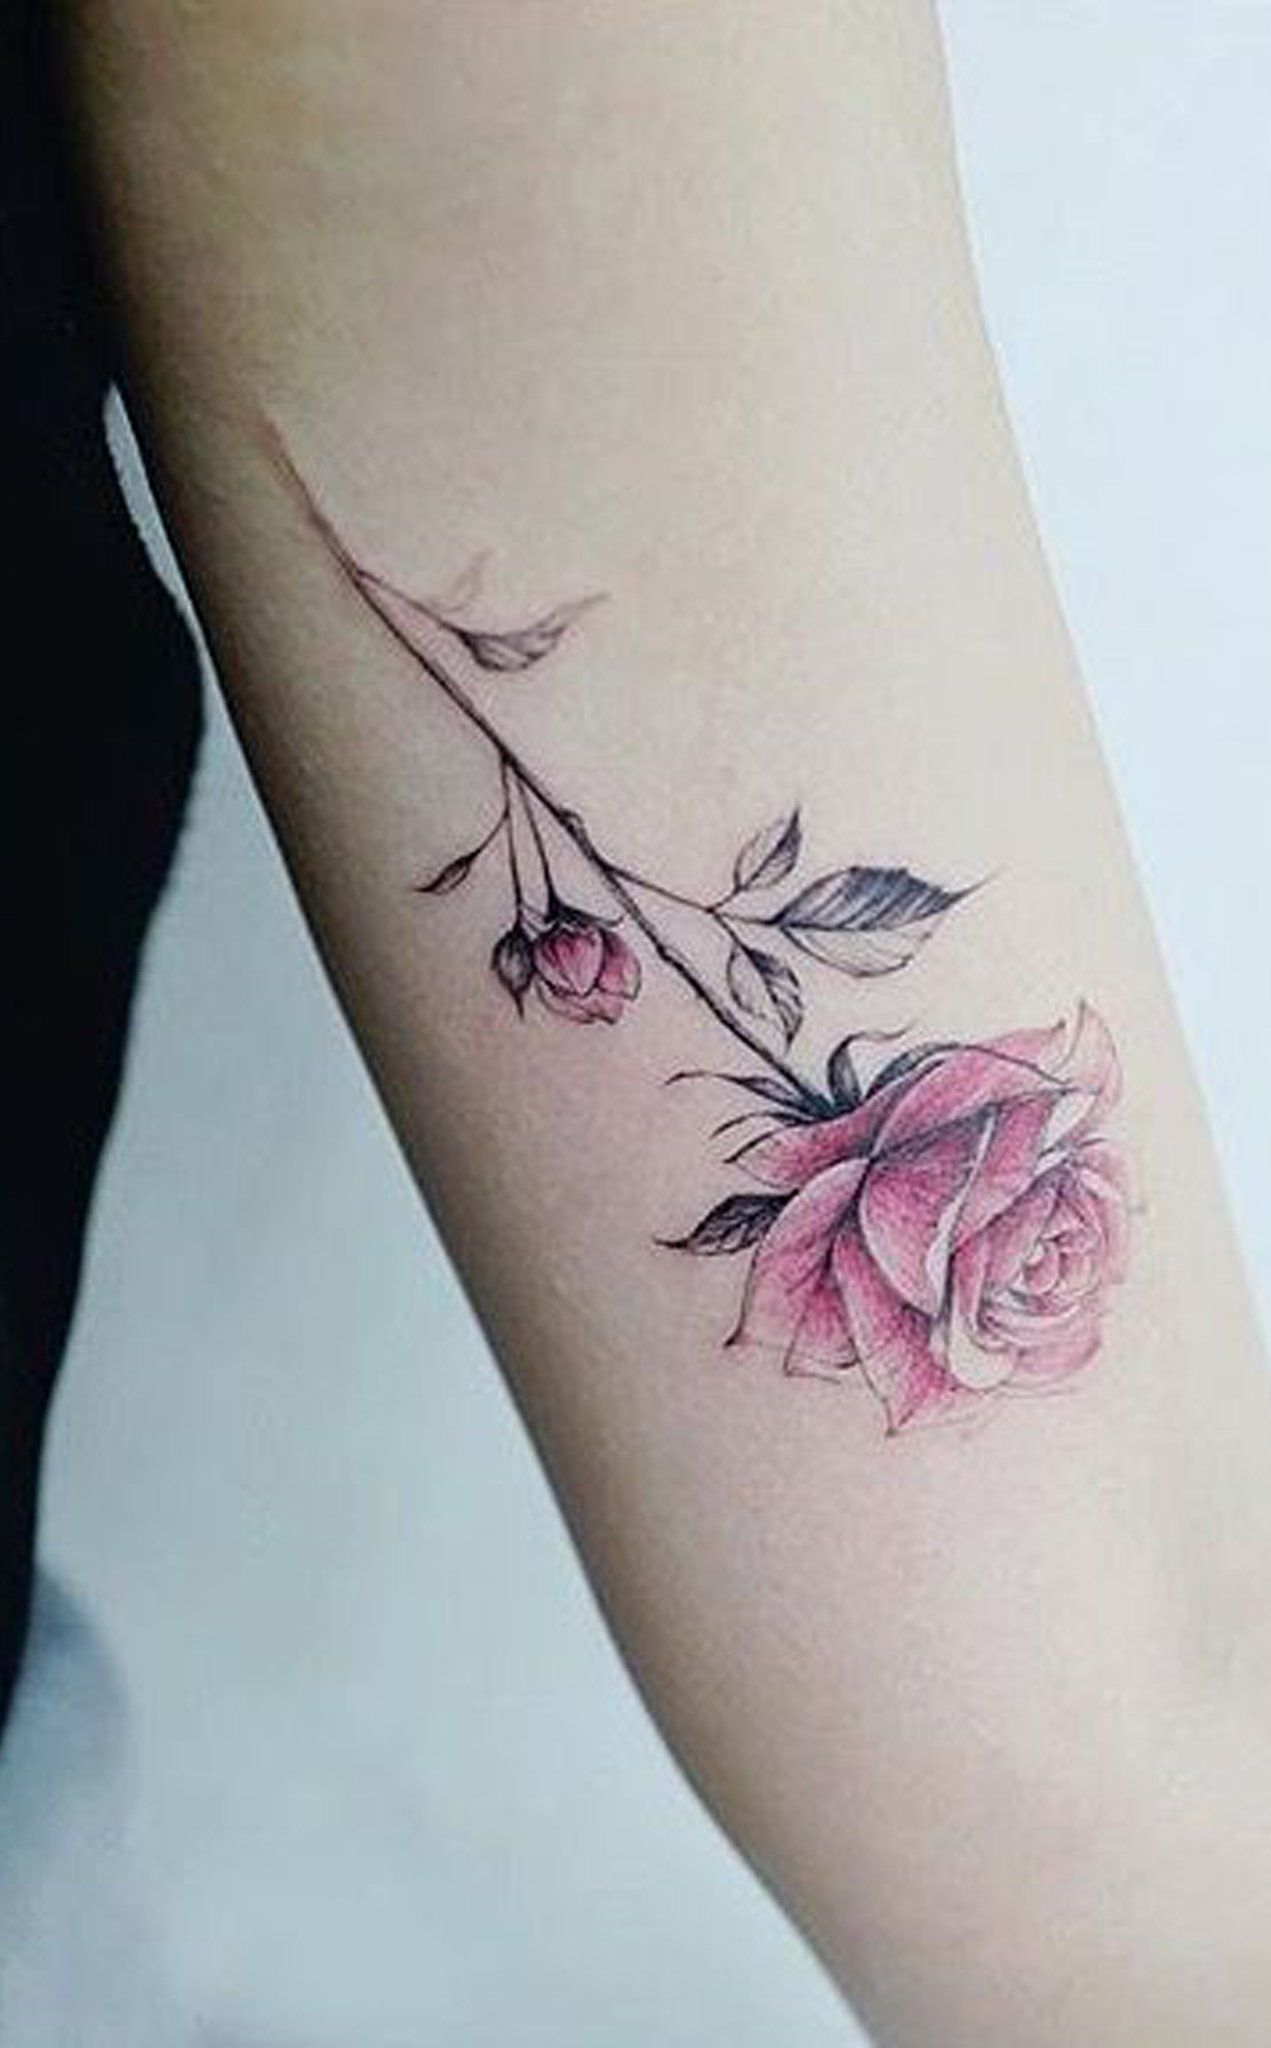 Rose Tattoos Flower: Watercolor Rose Arm Tattoo Ideas For Women